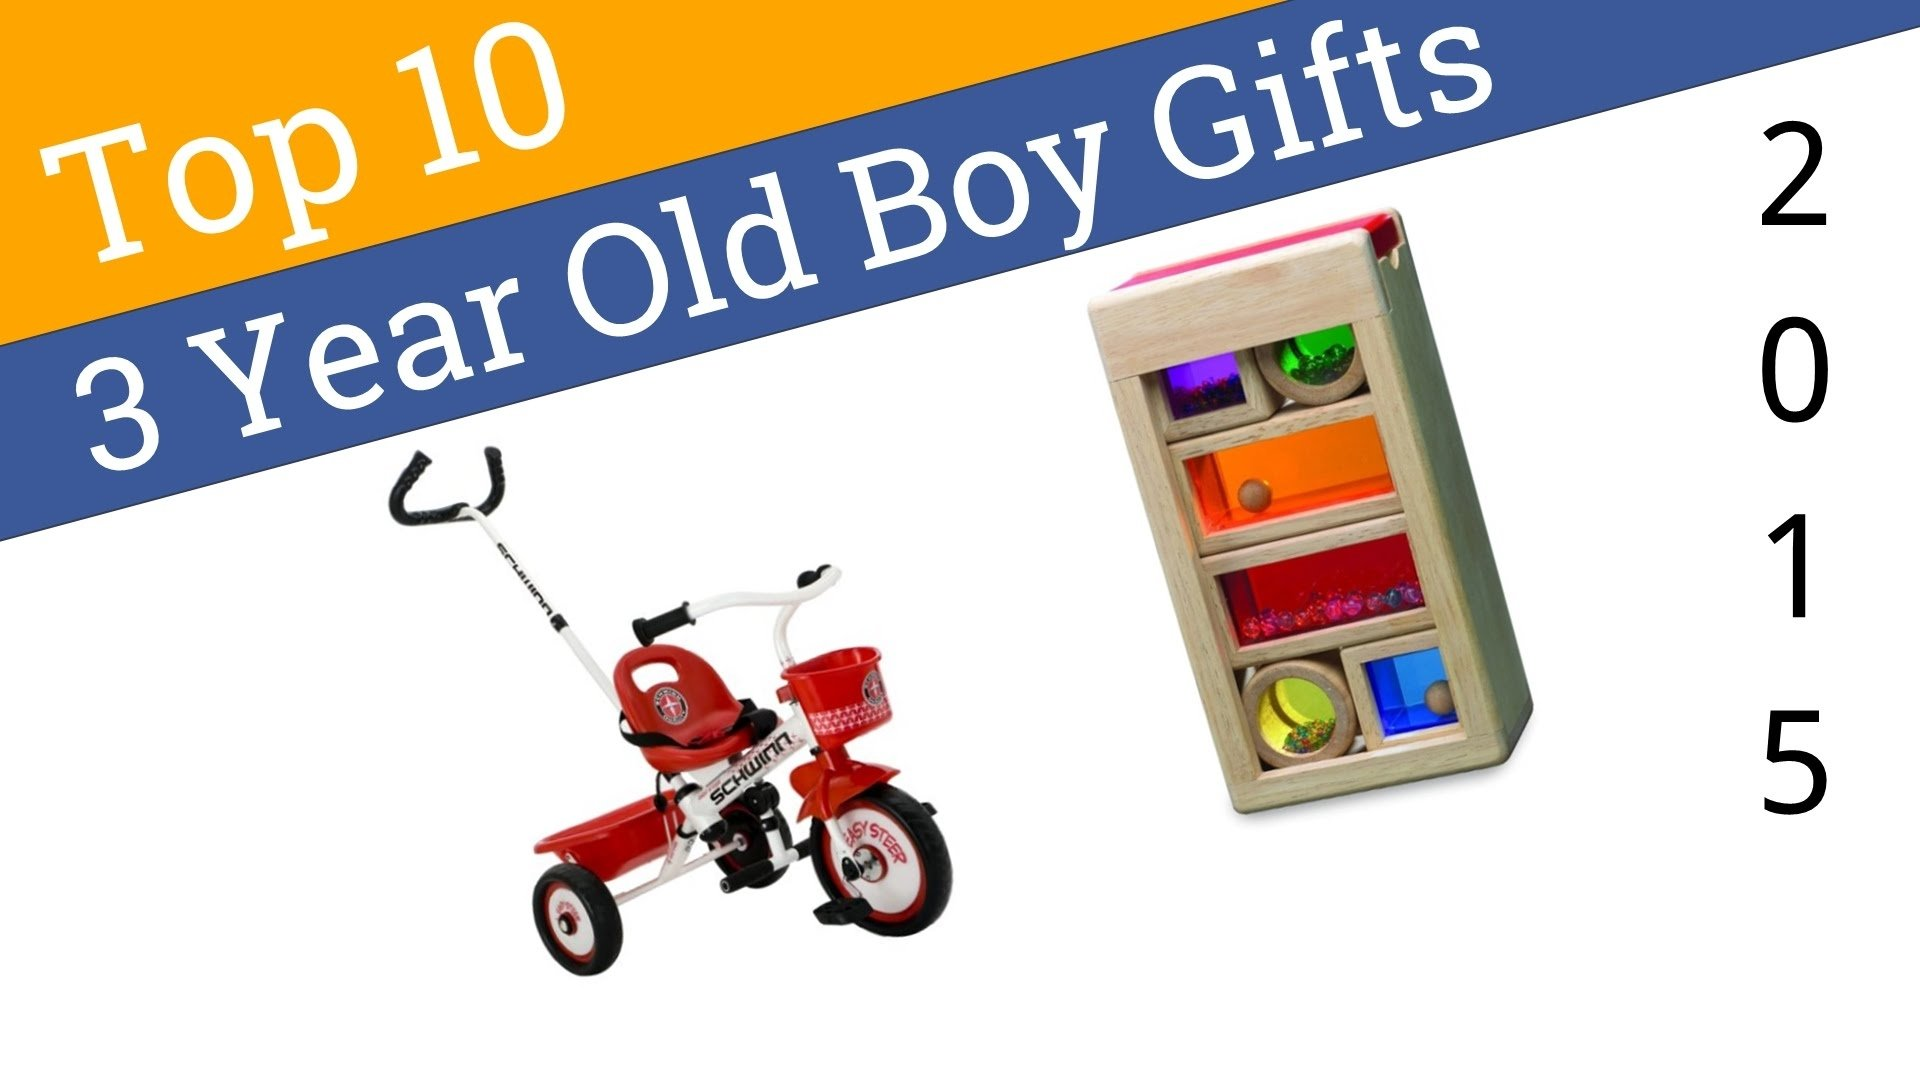 10 Cute Gift Ideas For A 3 Year Old Boy 10 best 3 year old boy gifts 2015 youtube 1 2020